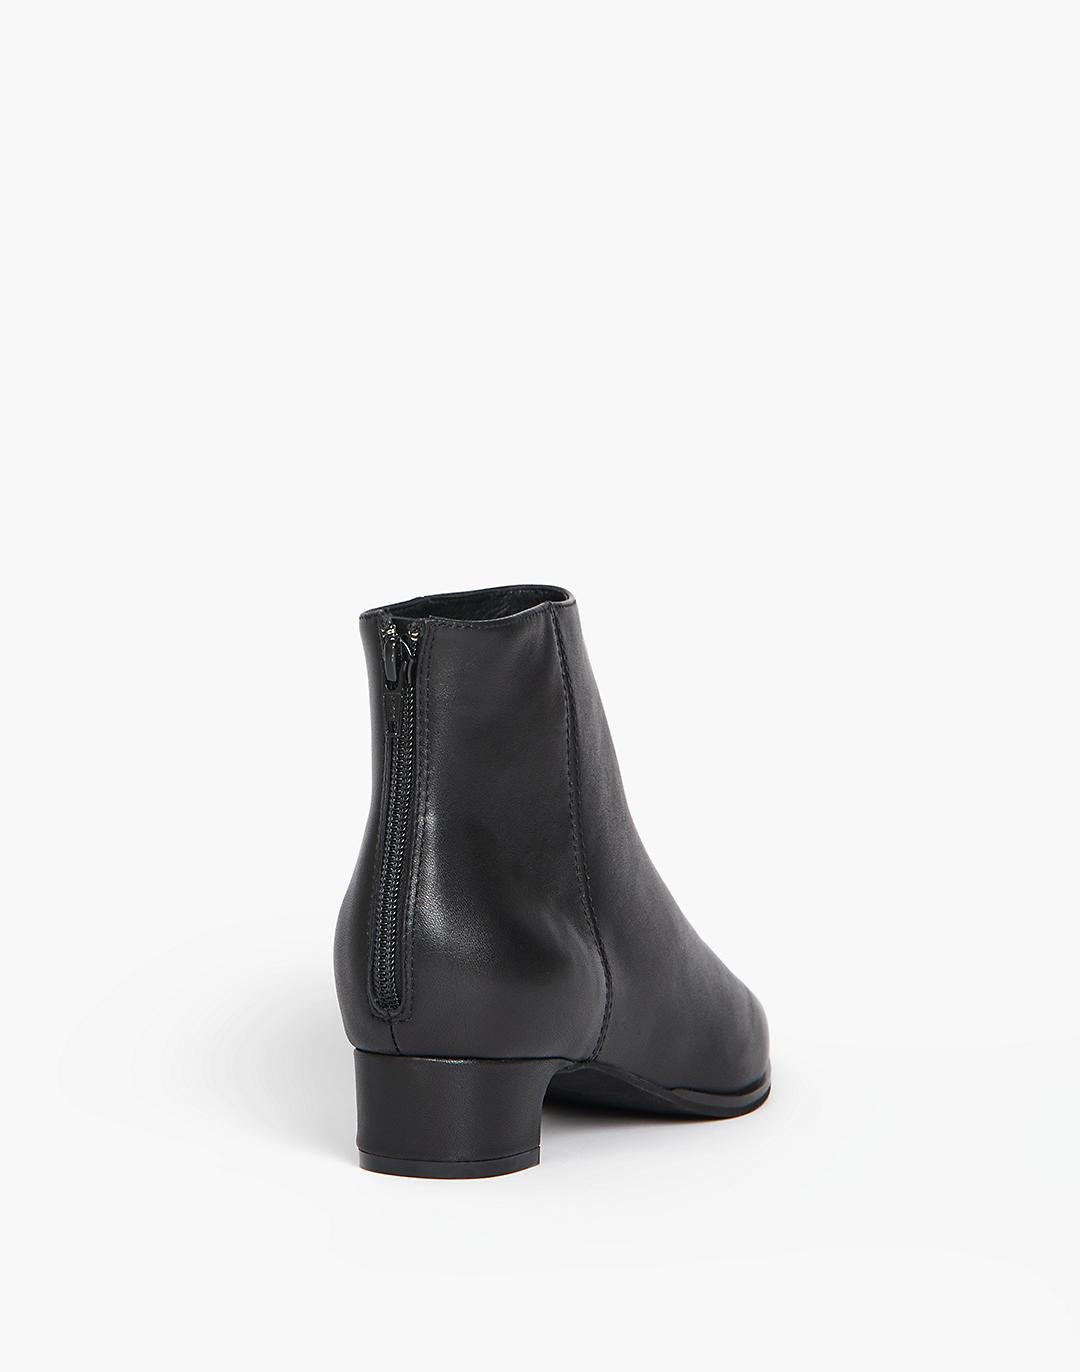 INTENTIONALLY BLANK Gary Boots 2